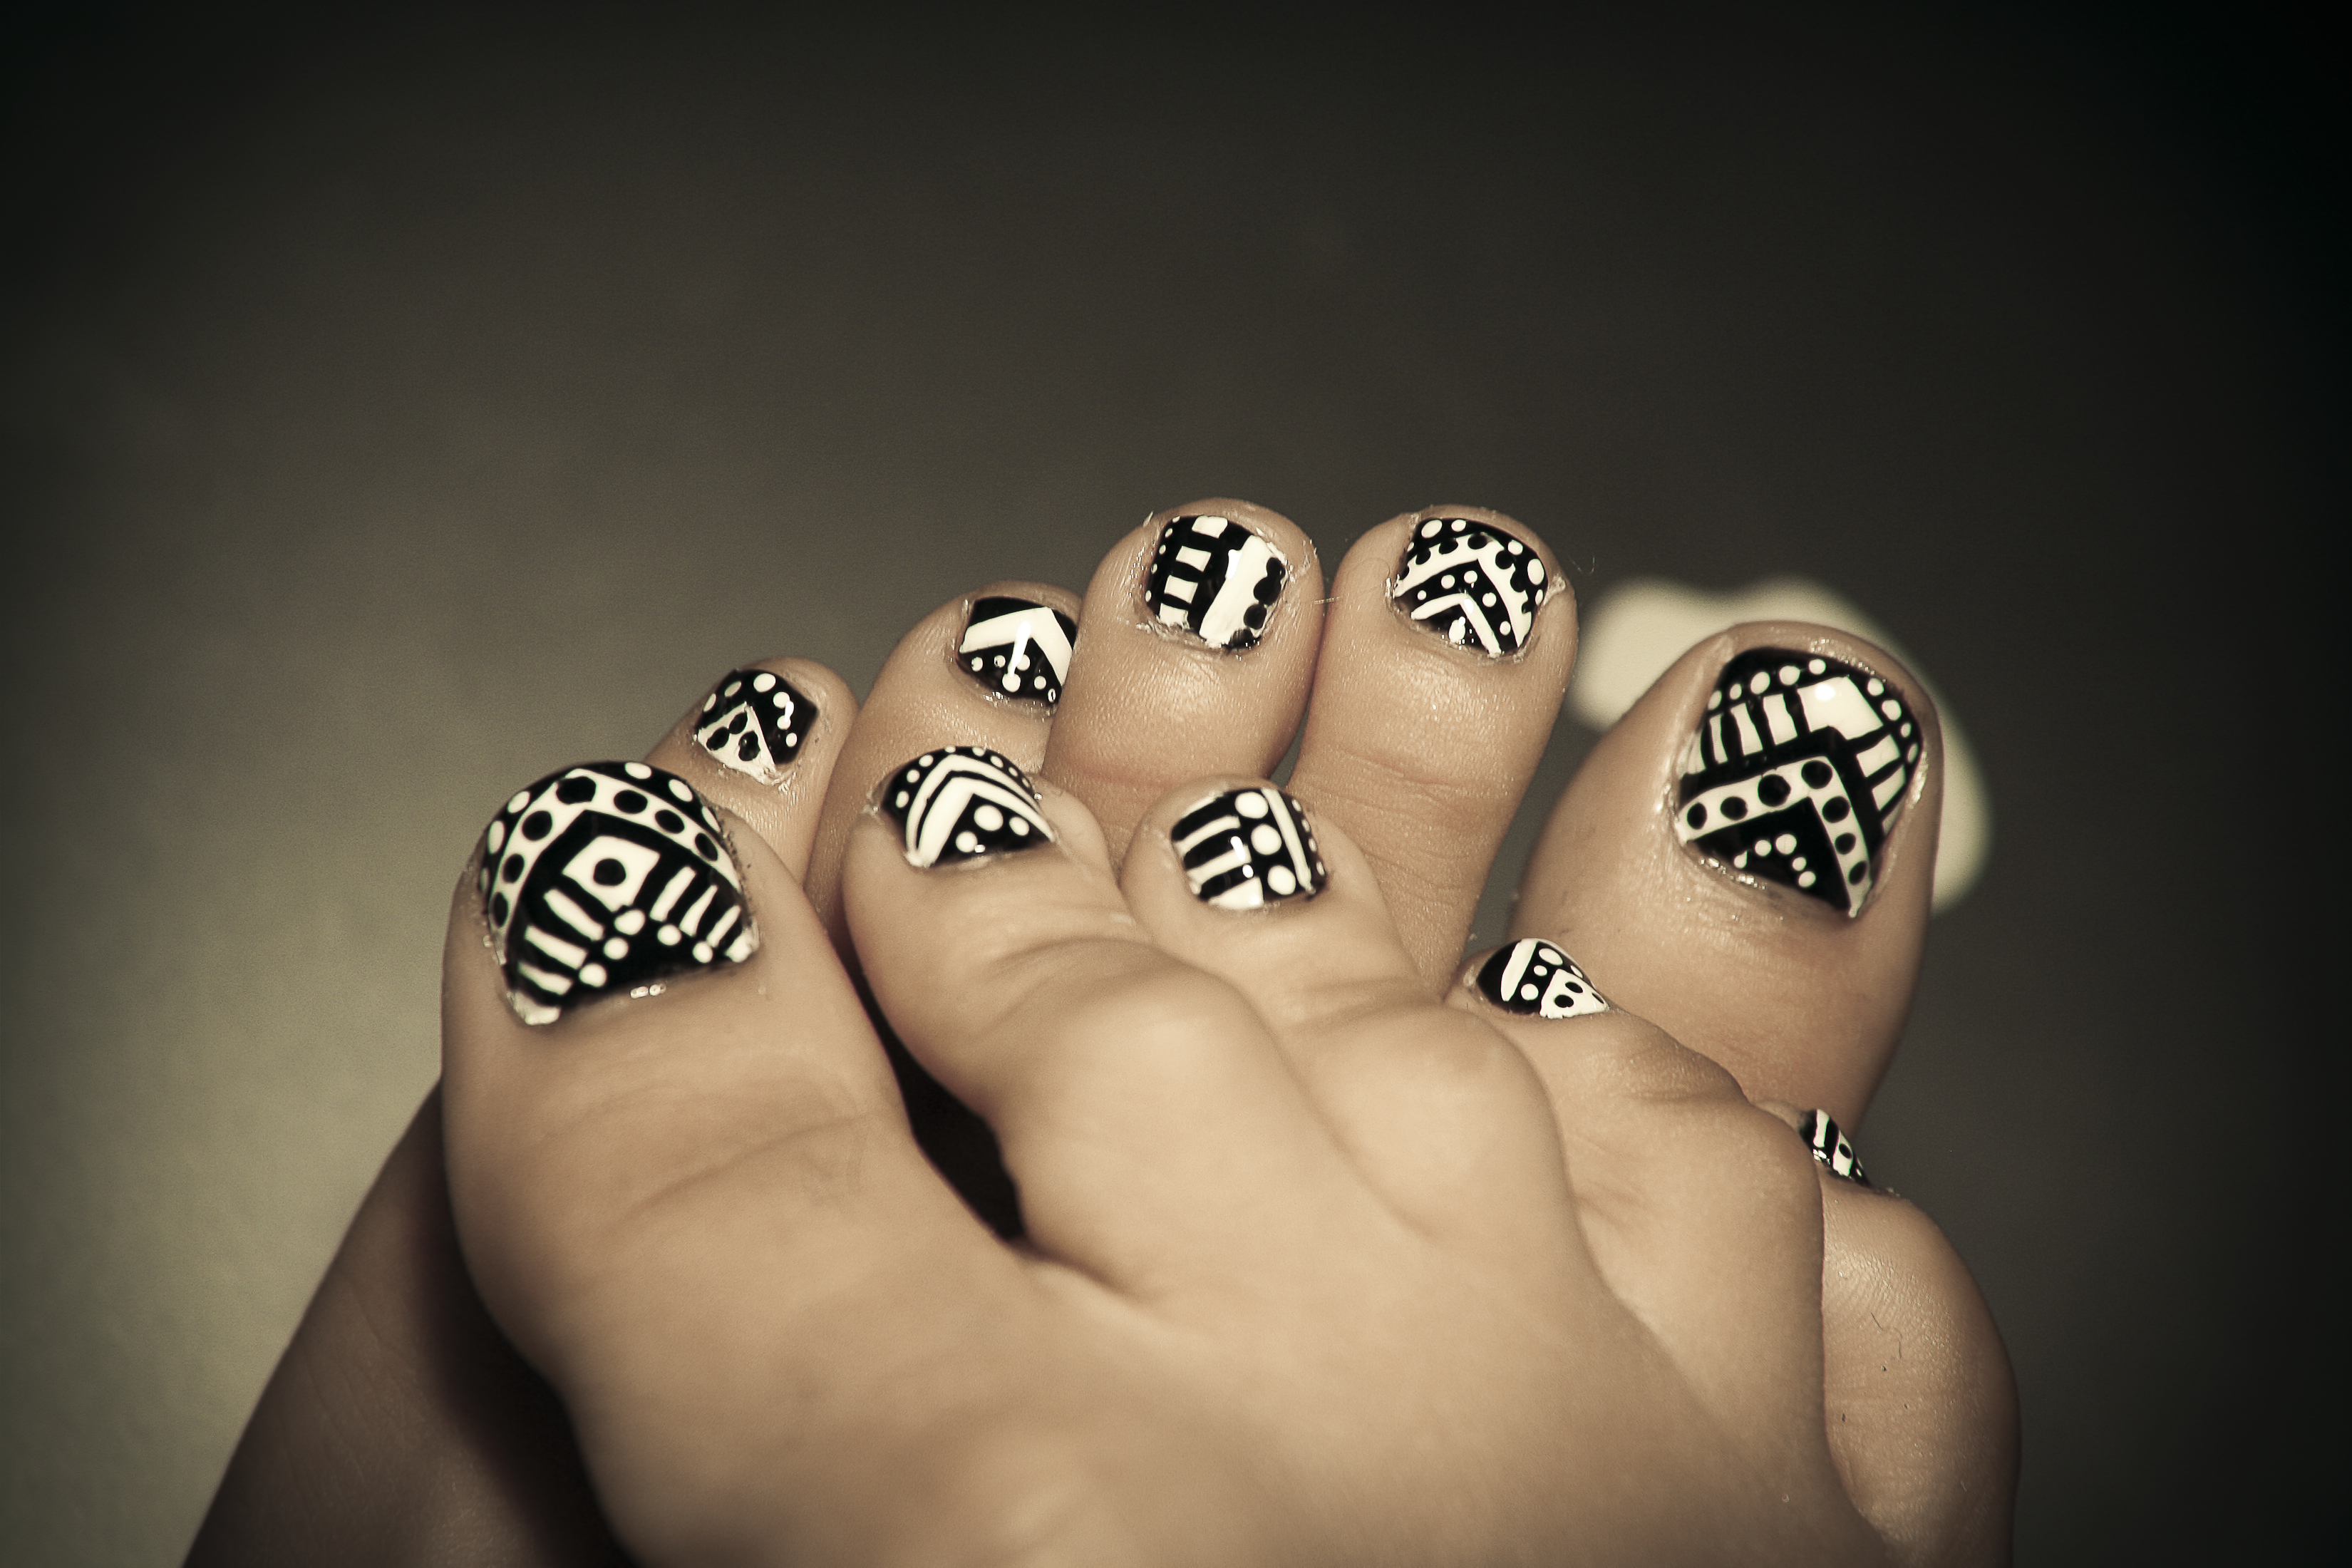 14 White Toe Nail Polish Designs Images